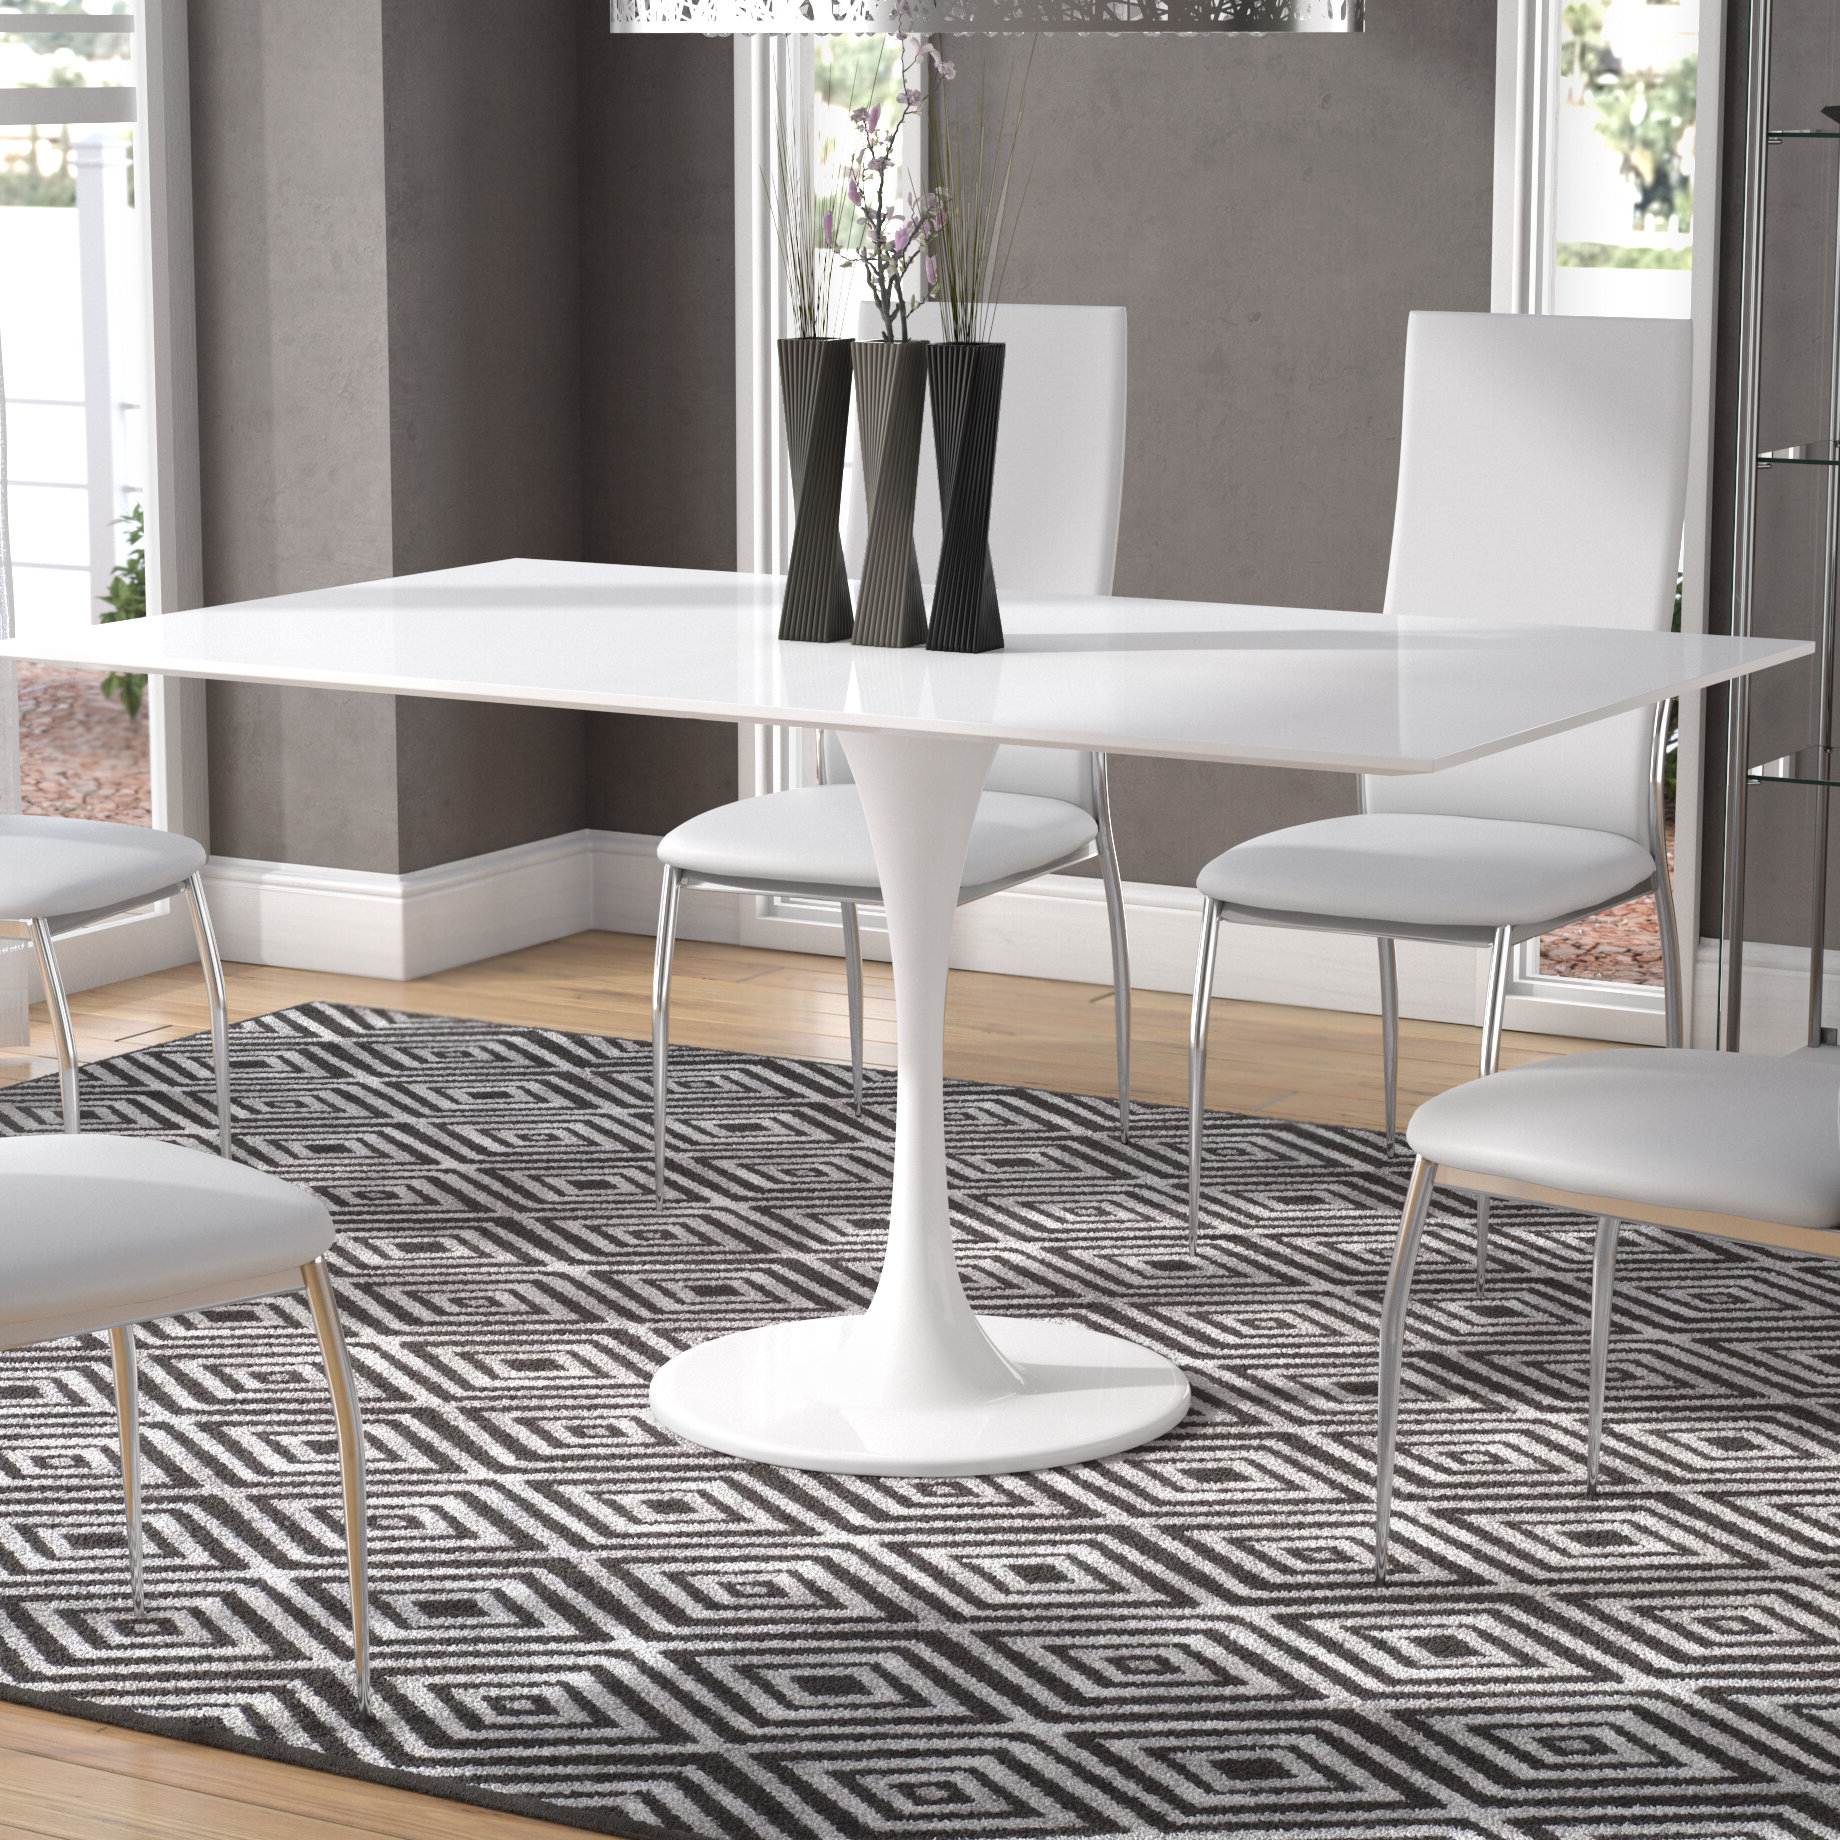 Well Liked Julien Contemporary Rectangular Dining Table Regarding Contemporary Rectangular Dining Tables (View 24 of 25)